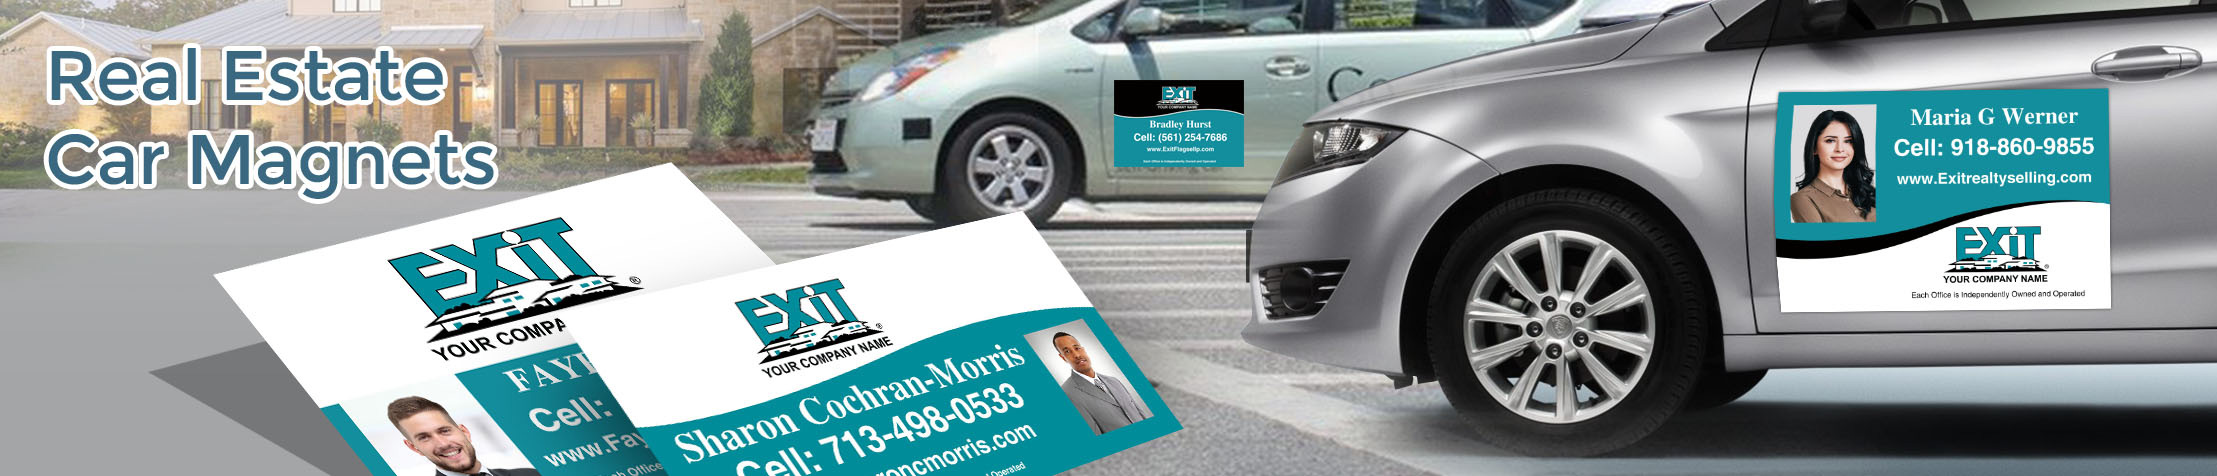 Exit Realty  Car Magnets - Exit approved vendor custom car magnets for realtors, with or without photo | BestPrintBuy.com